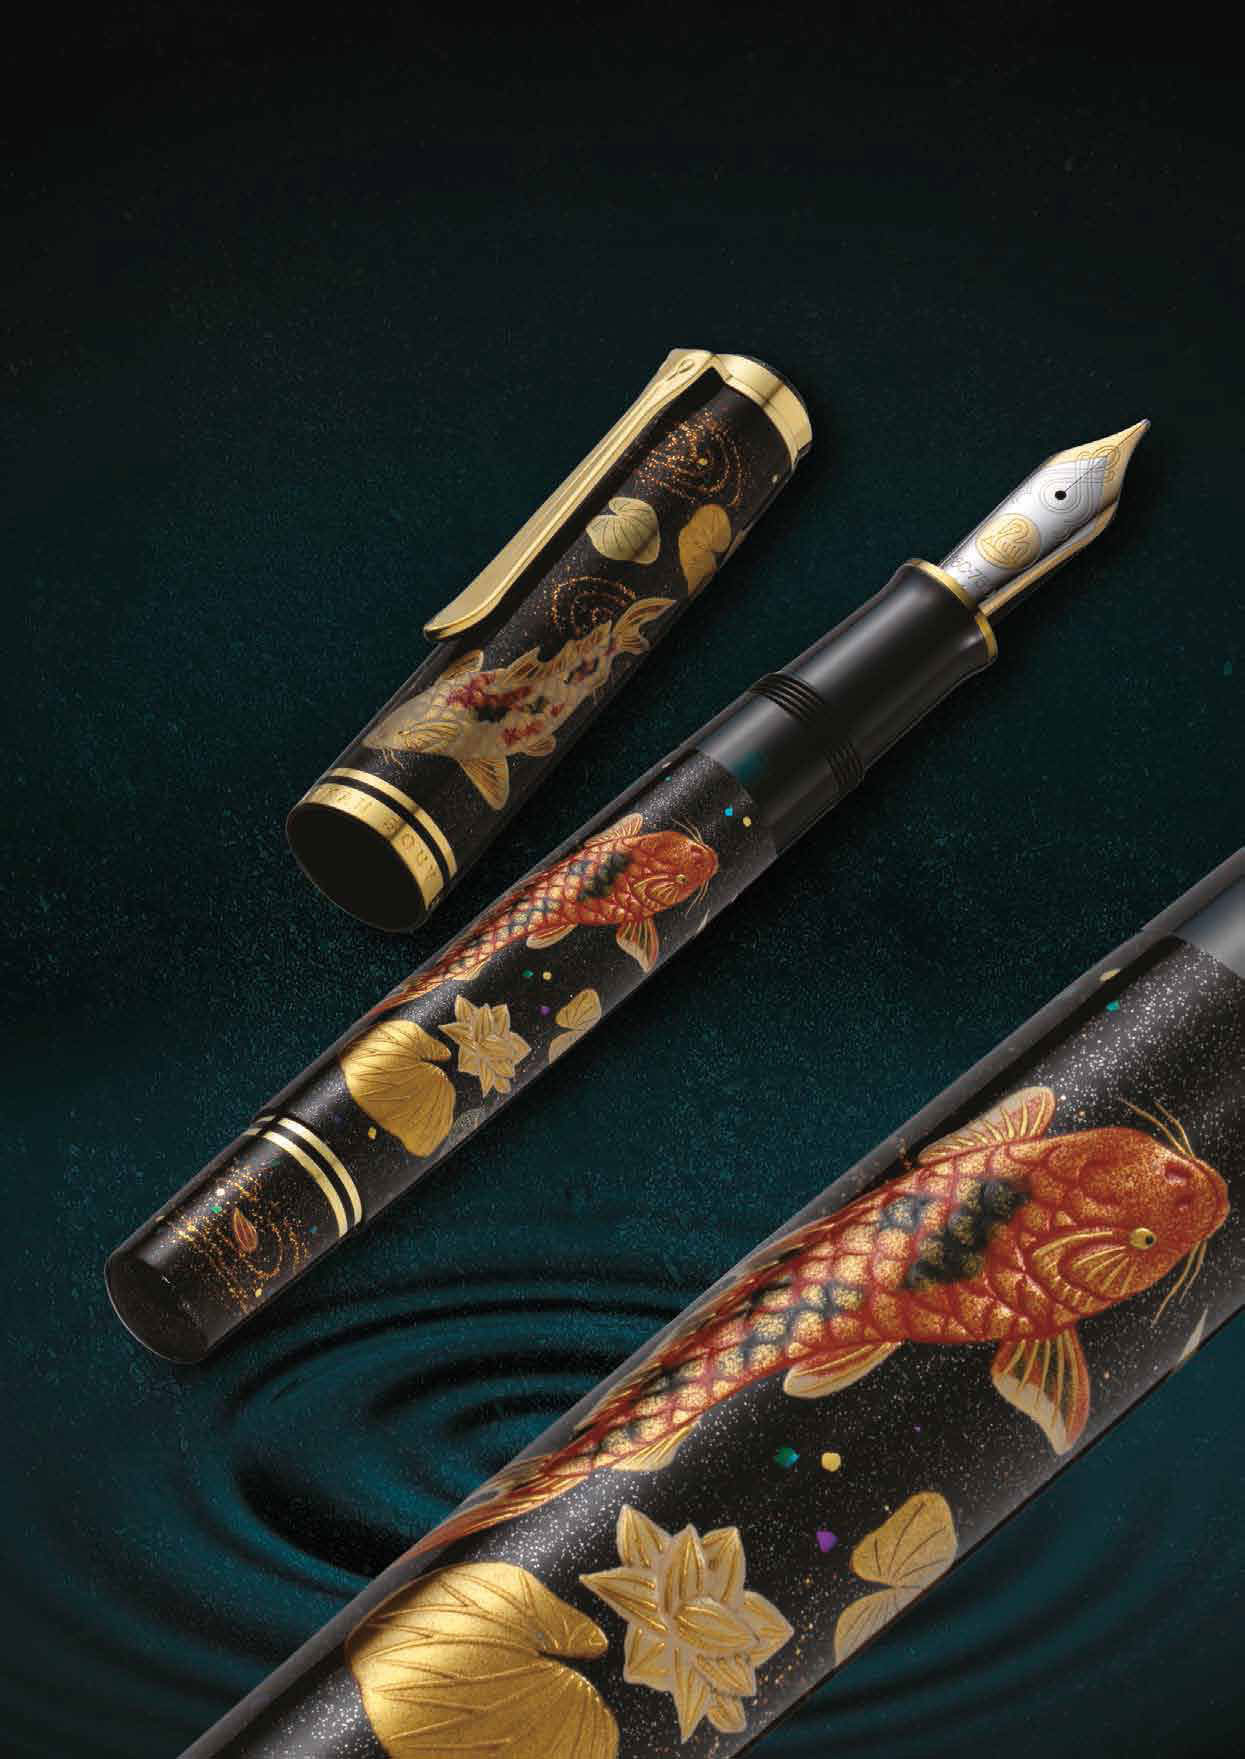 Pelikan Maki-e Koi Fountain Pen